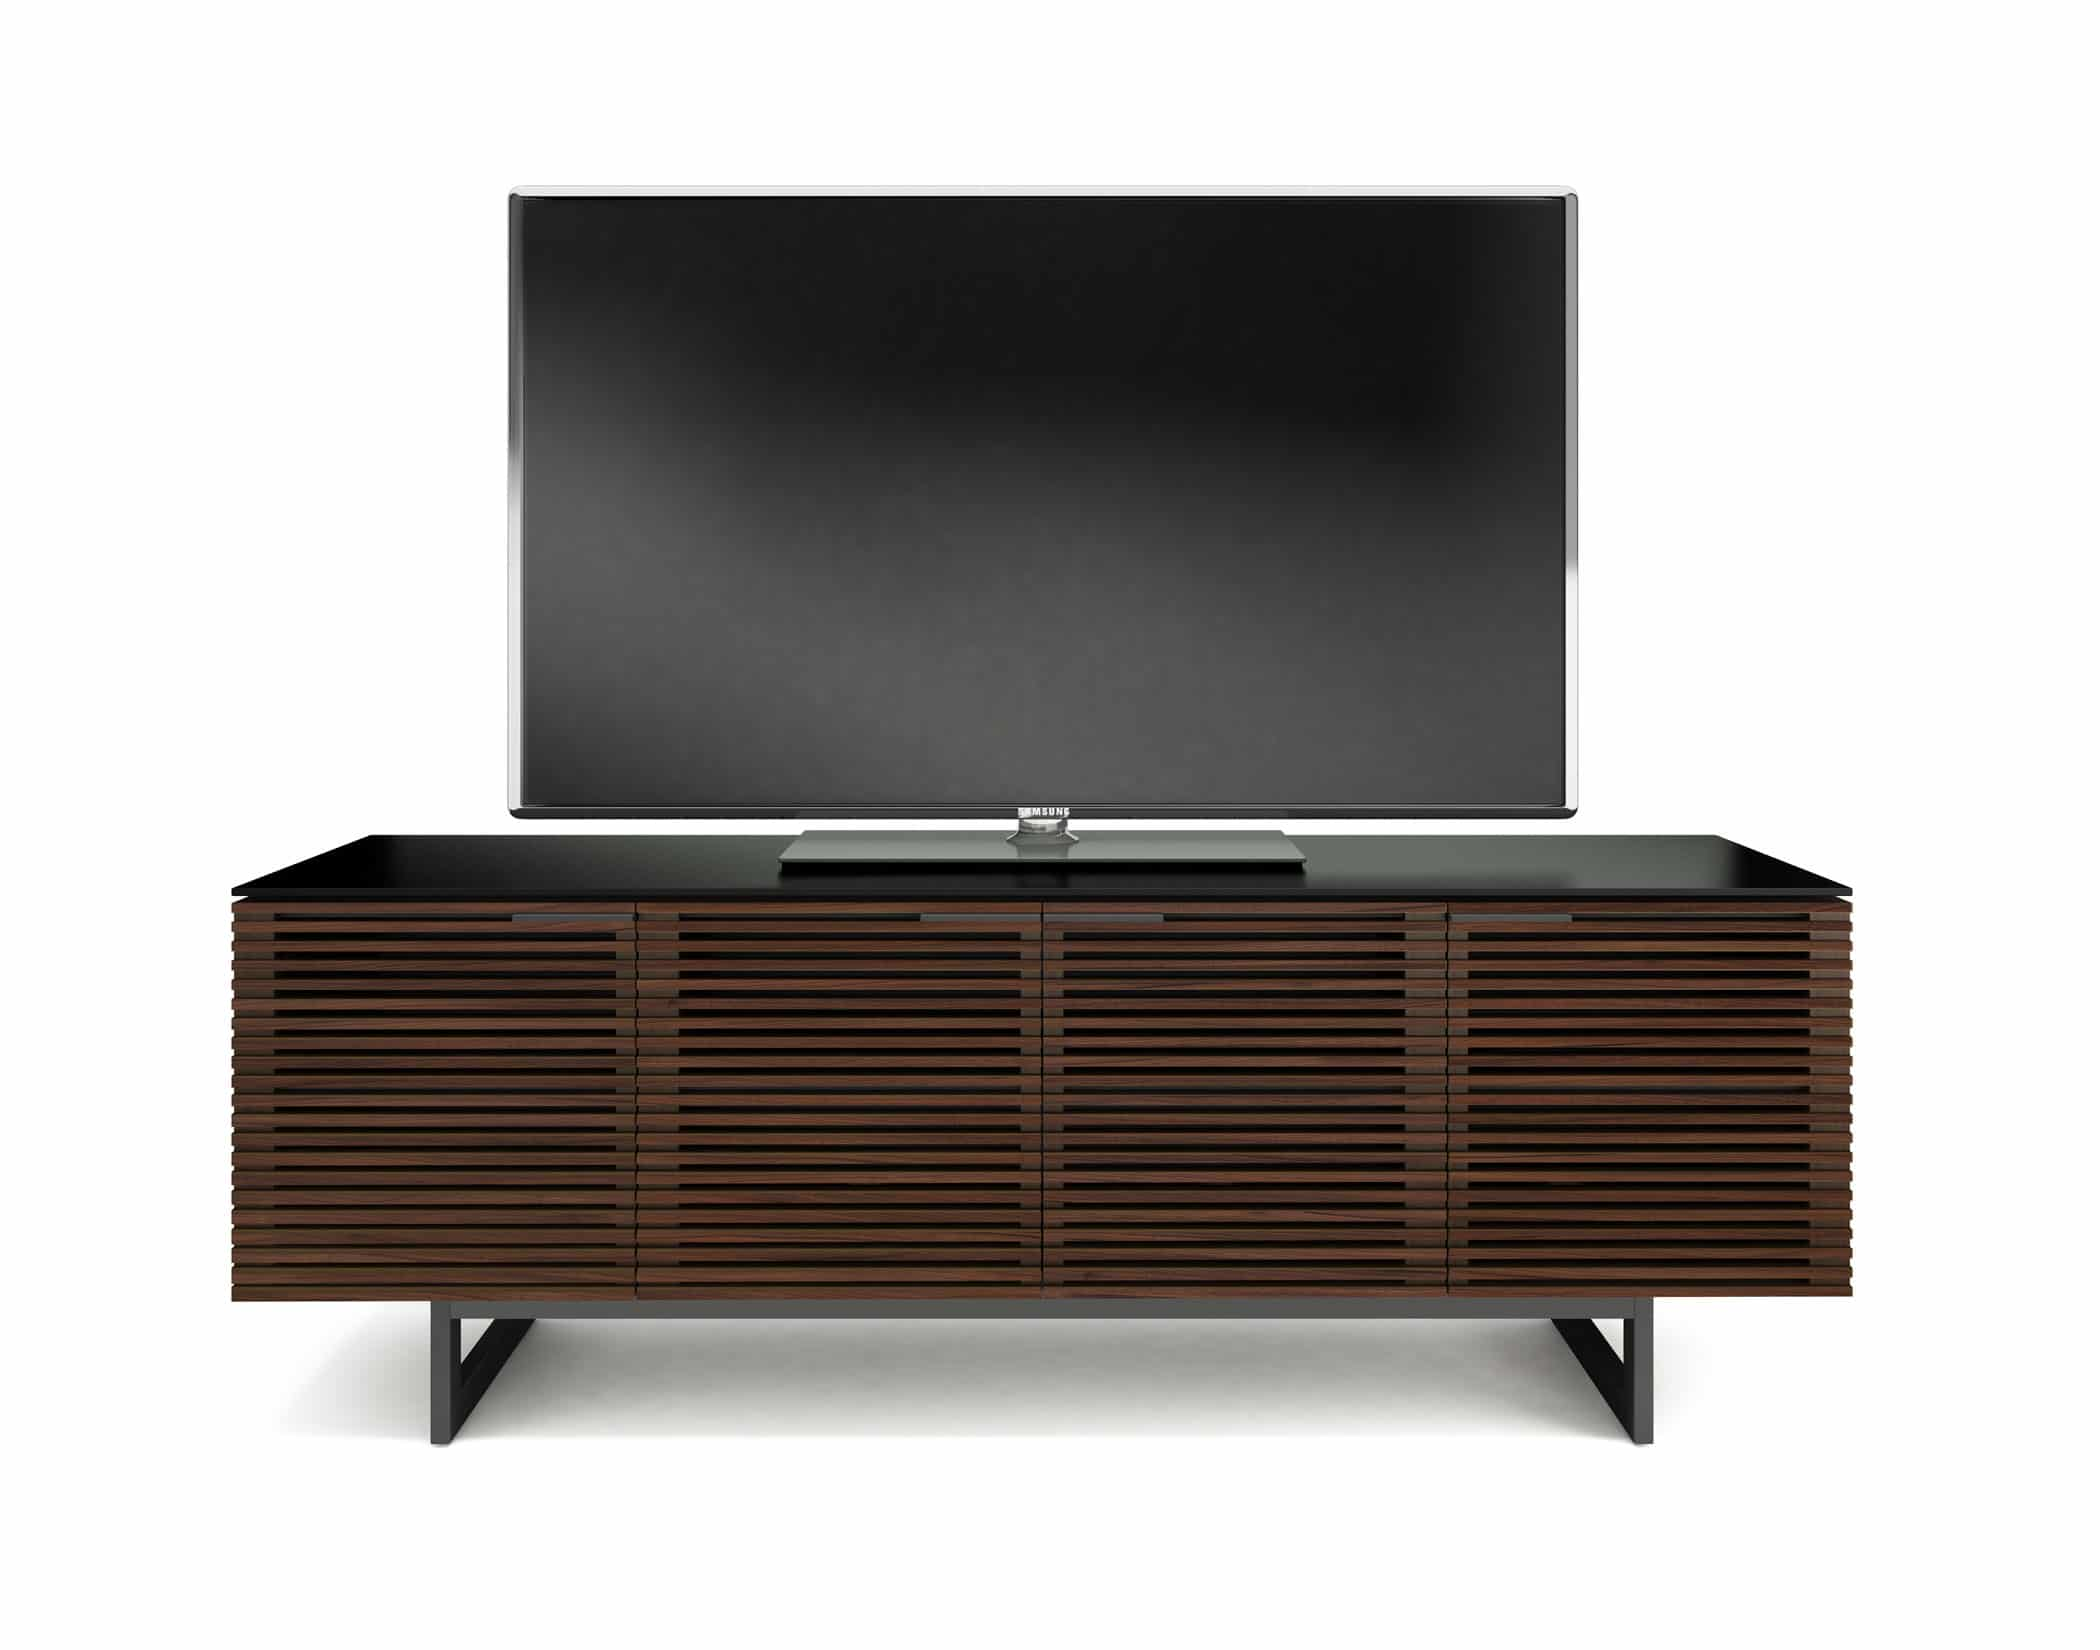 Corridor 8179 Modern TV Stand & Media Console | BDI Furniture